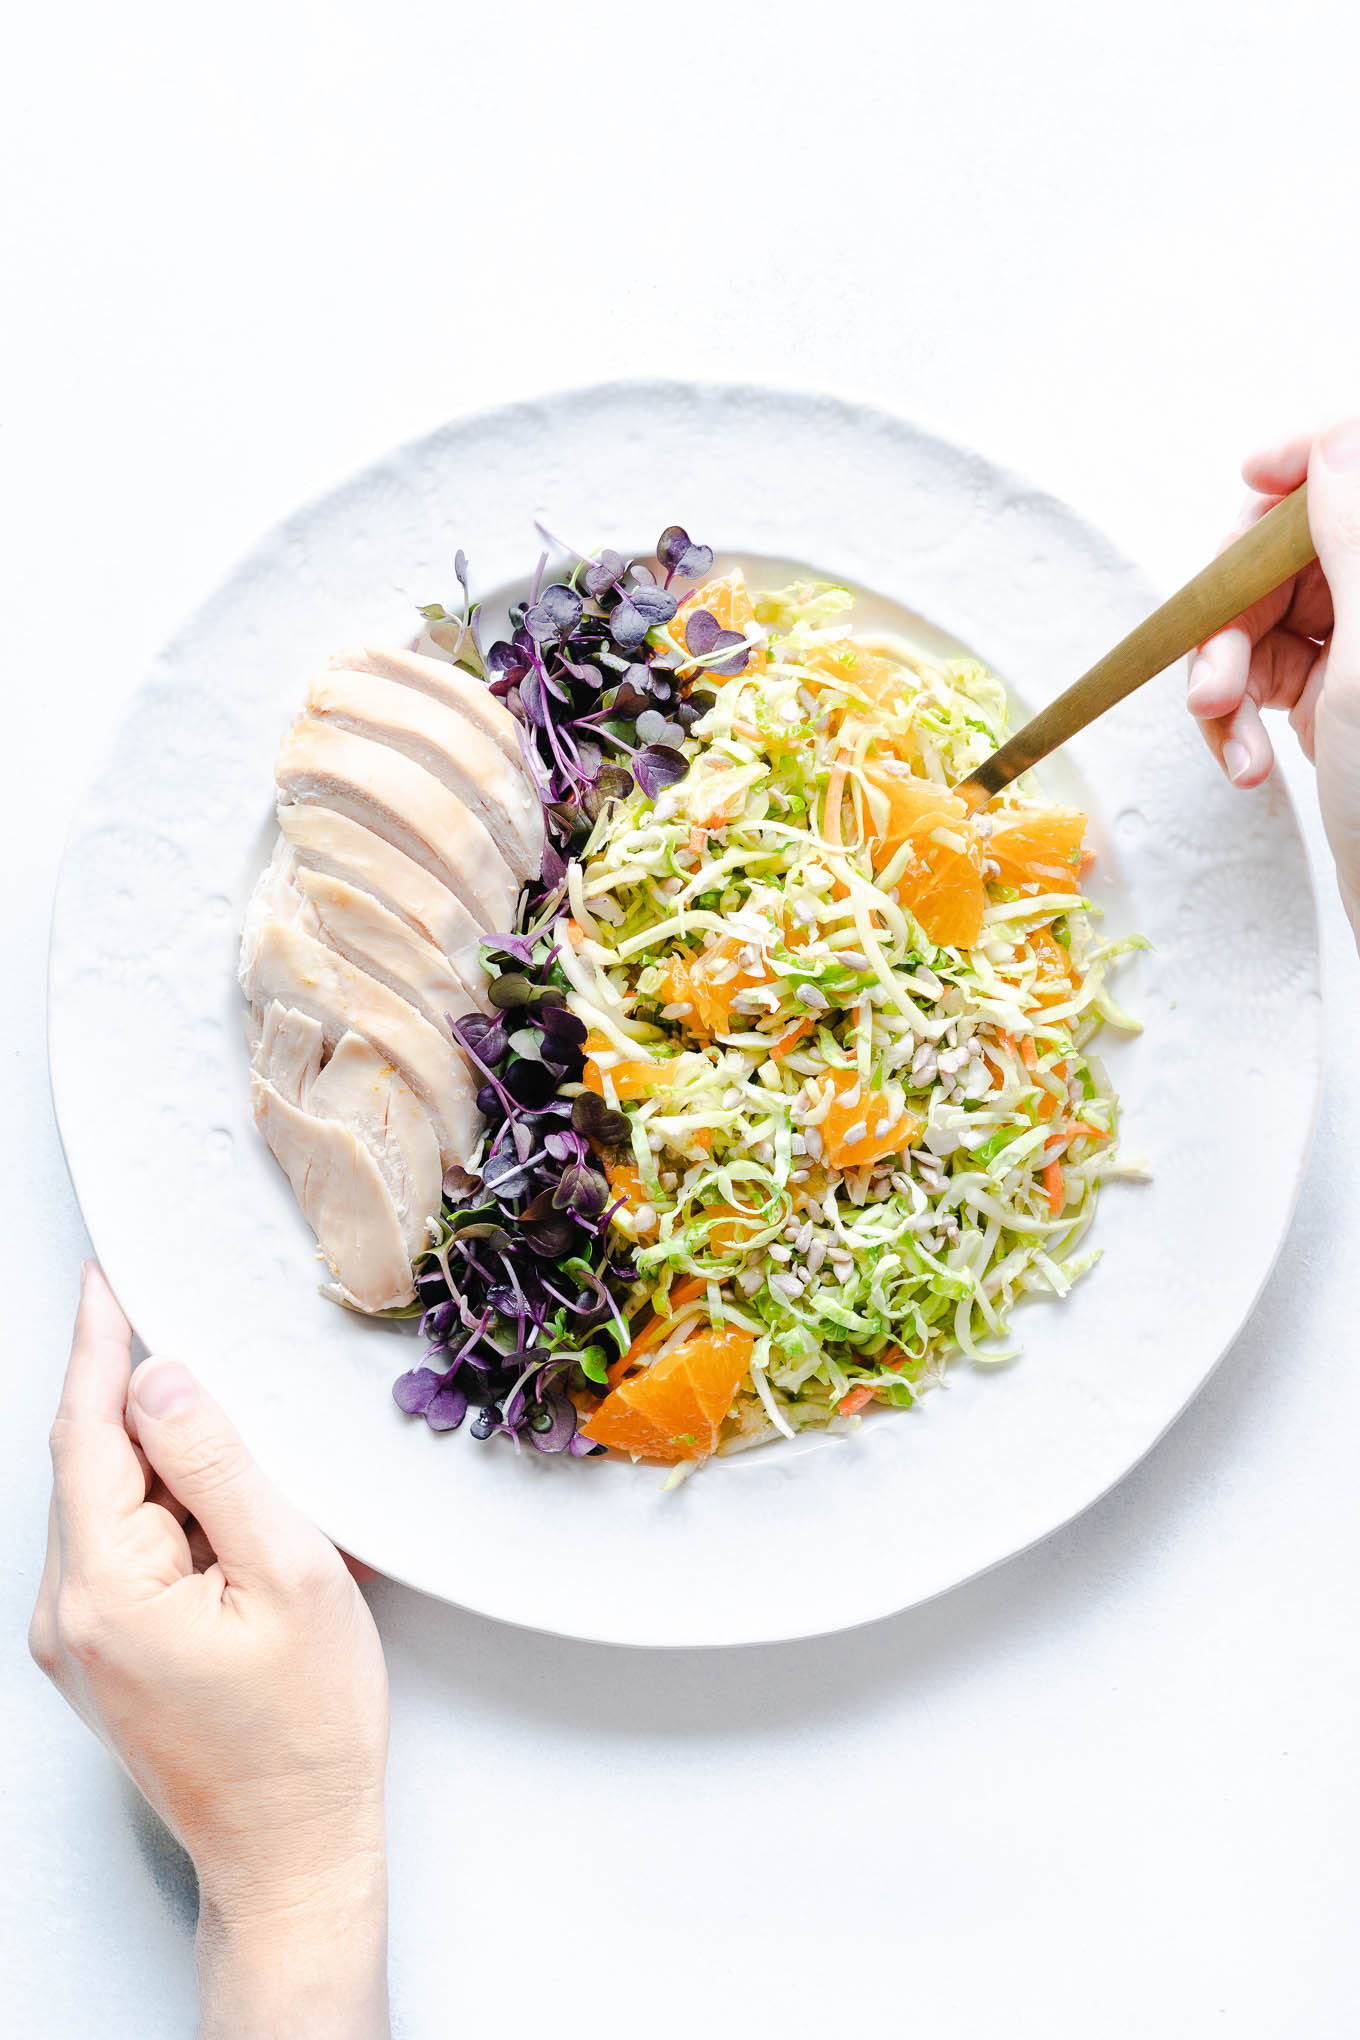 Raw Brussels Sprout Salad with Oranges - Plated with Chicken and Sprouts